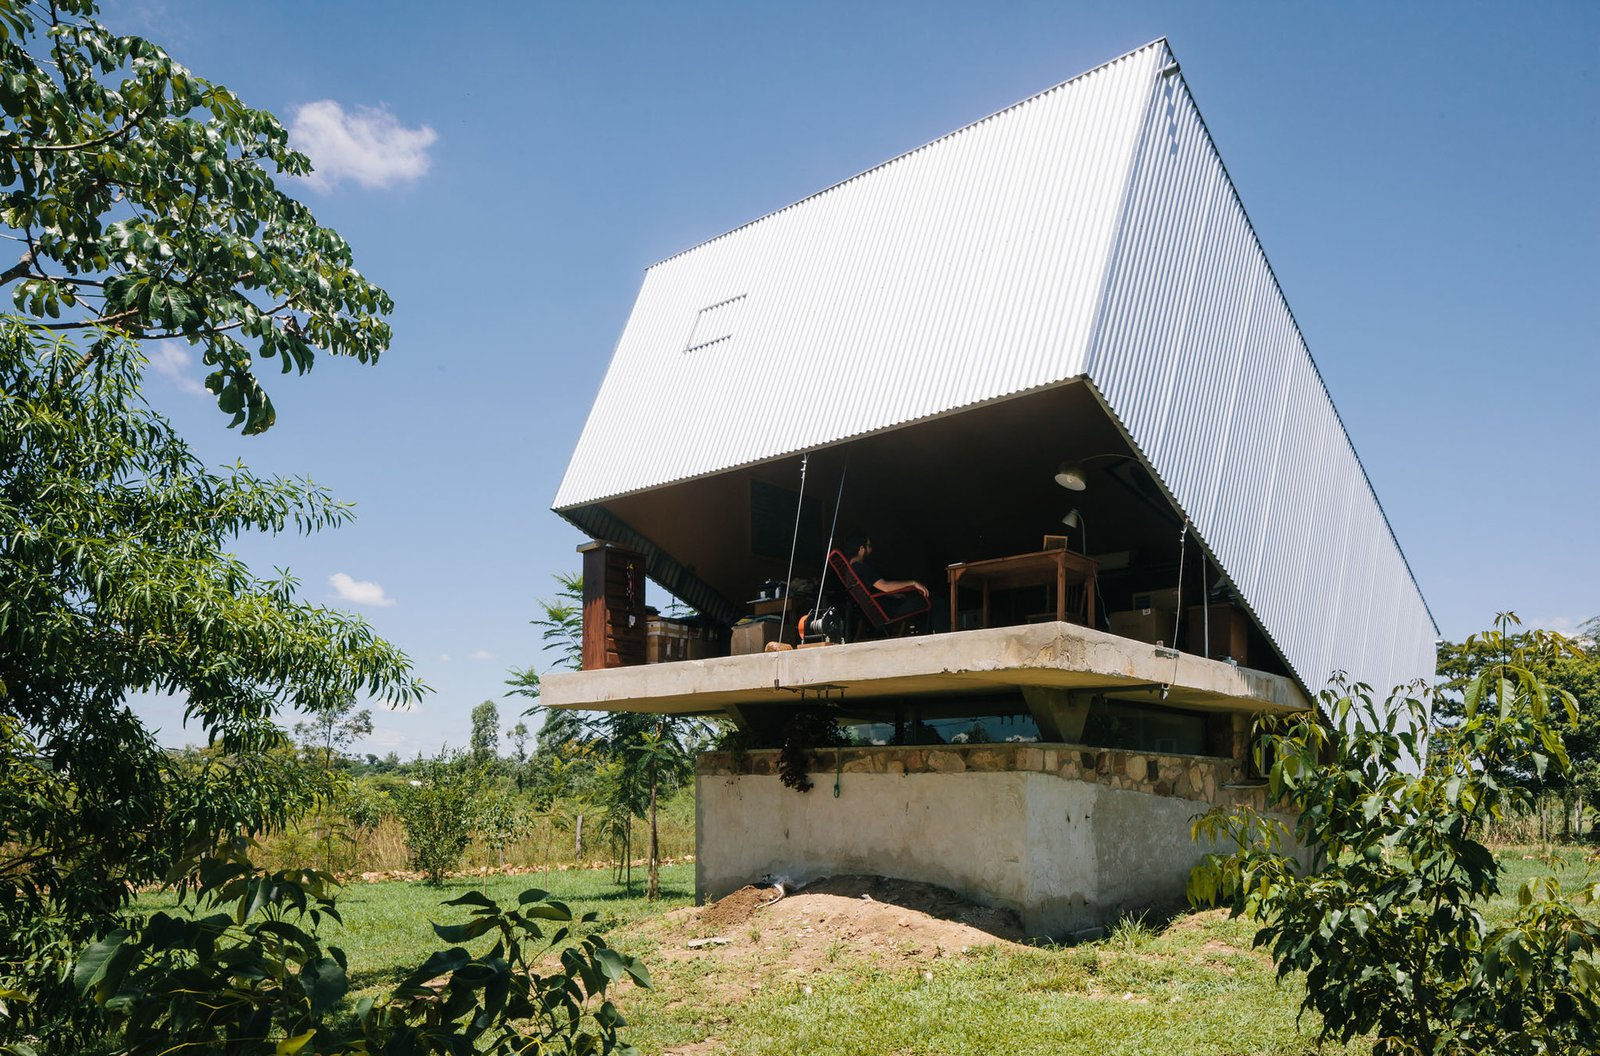 Photo 10 of 24 in Shape-Shifting Architecture: 10 Buildings That Move or Change Form